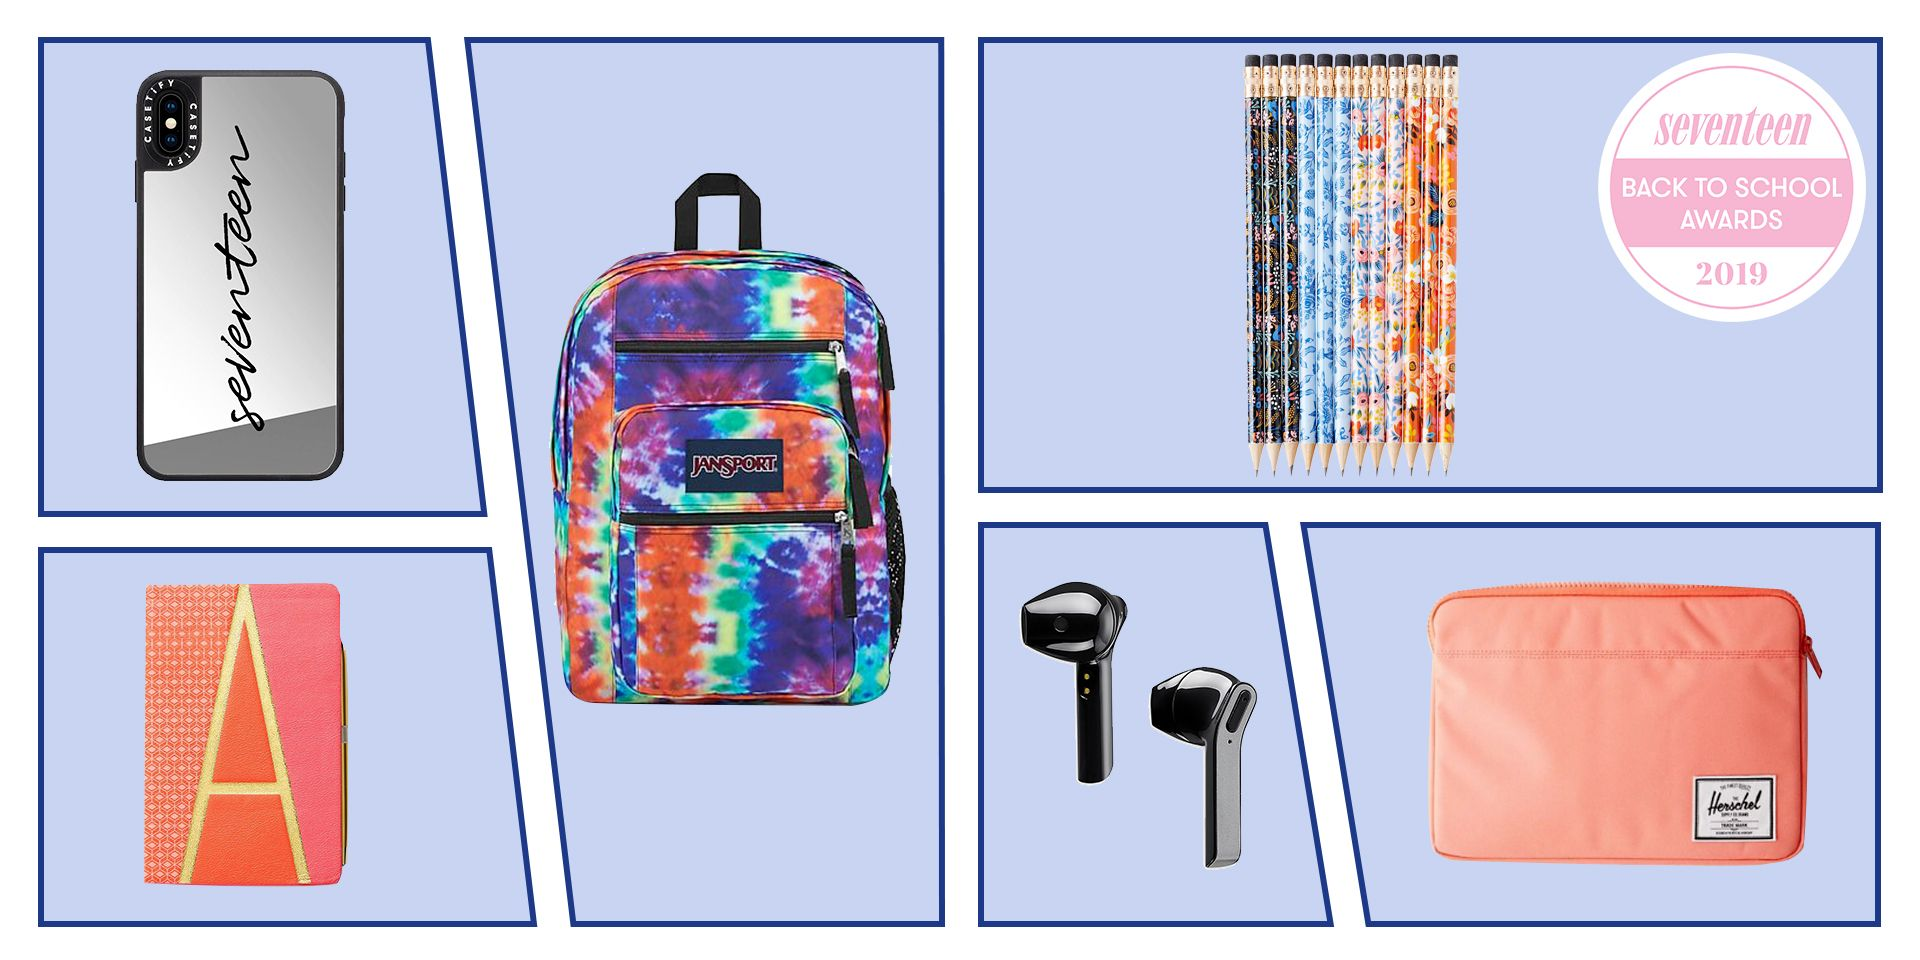 The 2019 Back-to-School Awards: 21 BTS Essentials Every Student Needs